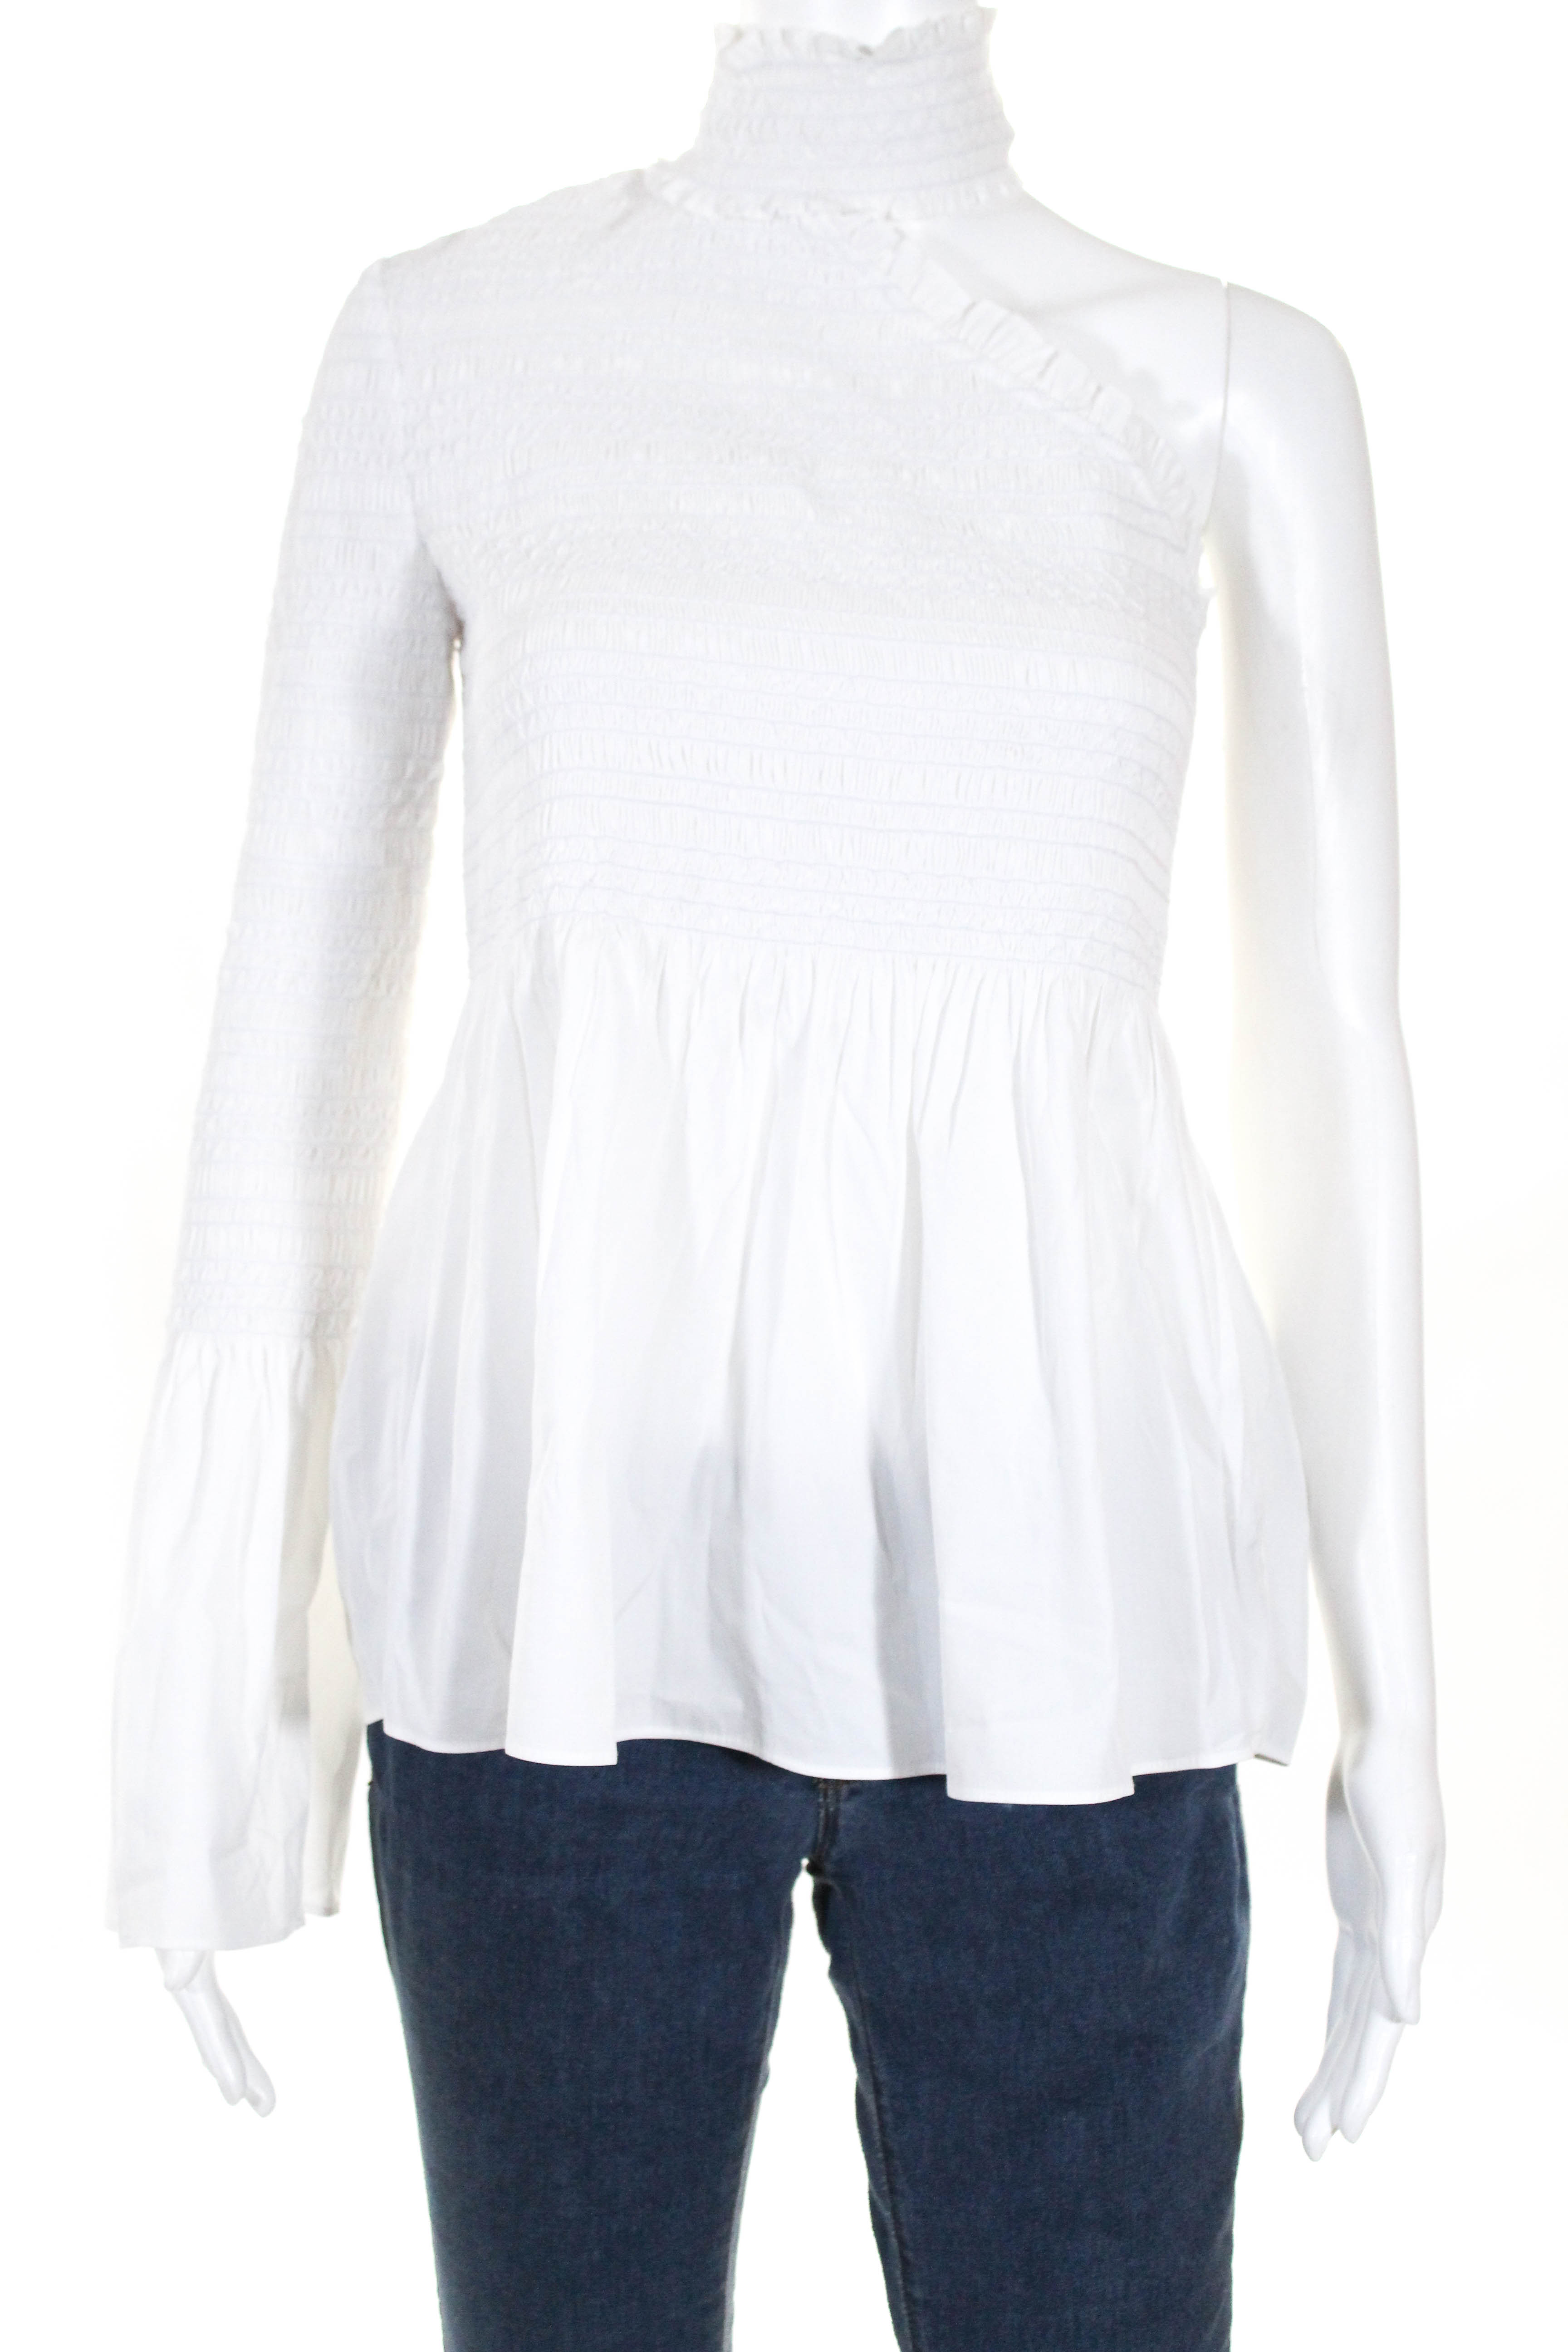 4207f6bff39 A.L.C. Womens One Shoulder Top Blouse White Cotton Smocked Ruffle Size 4